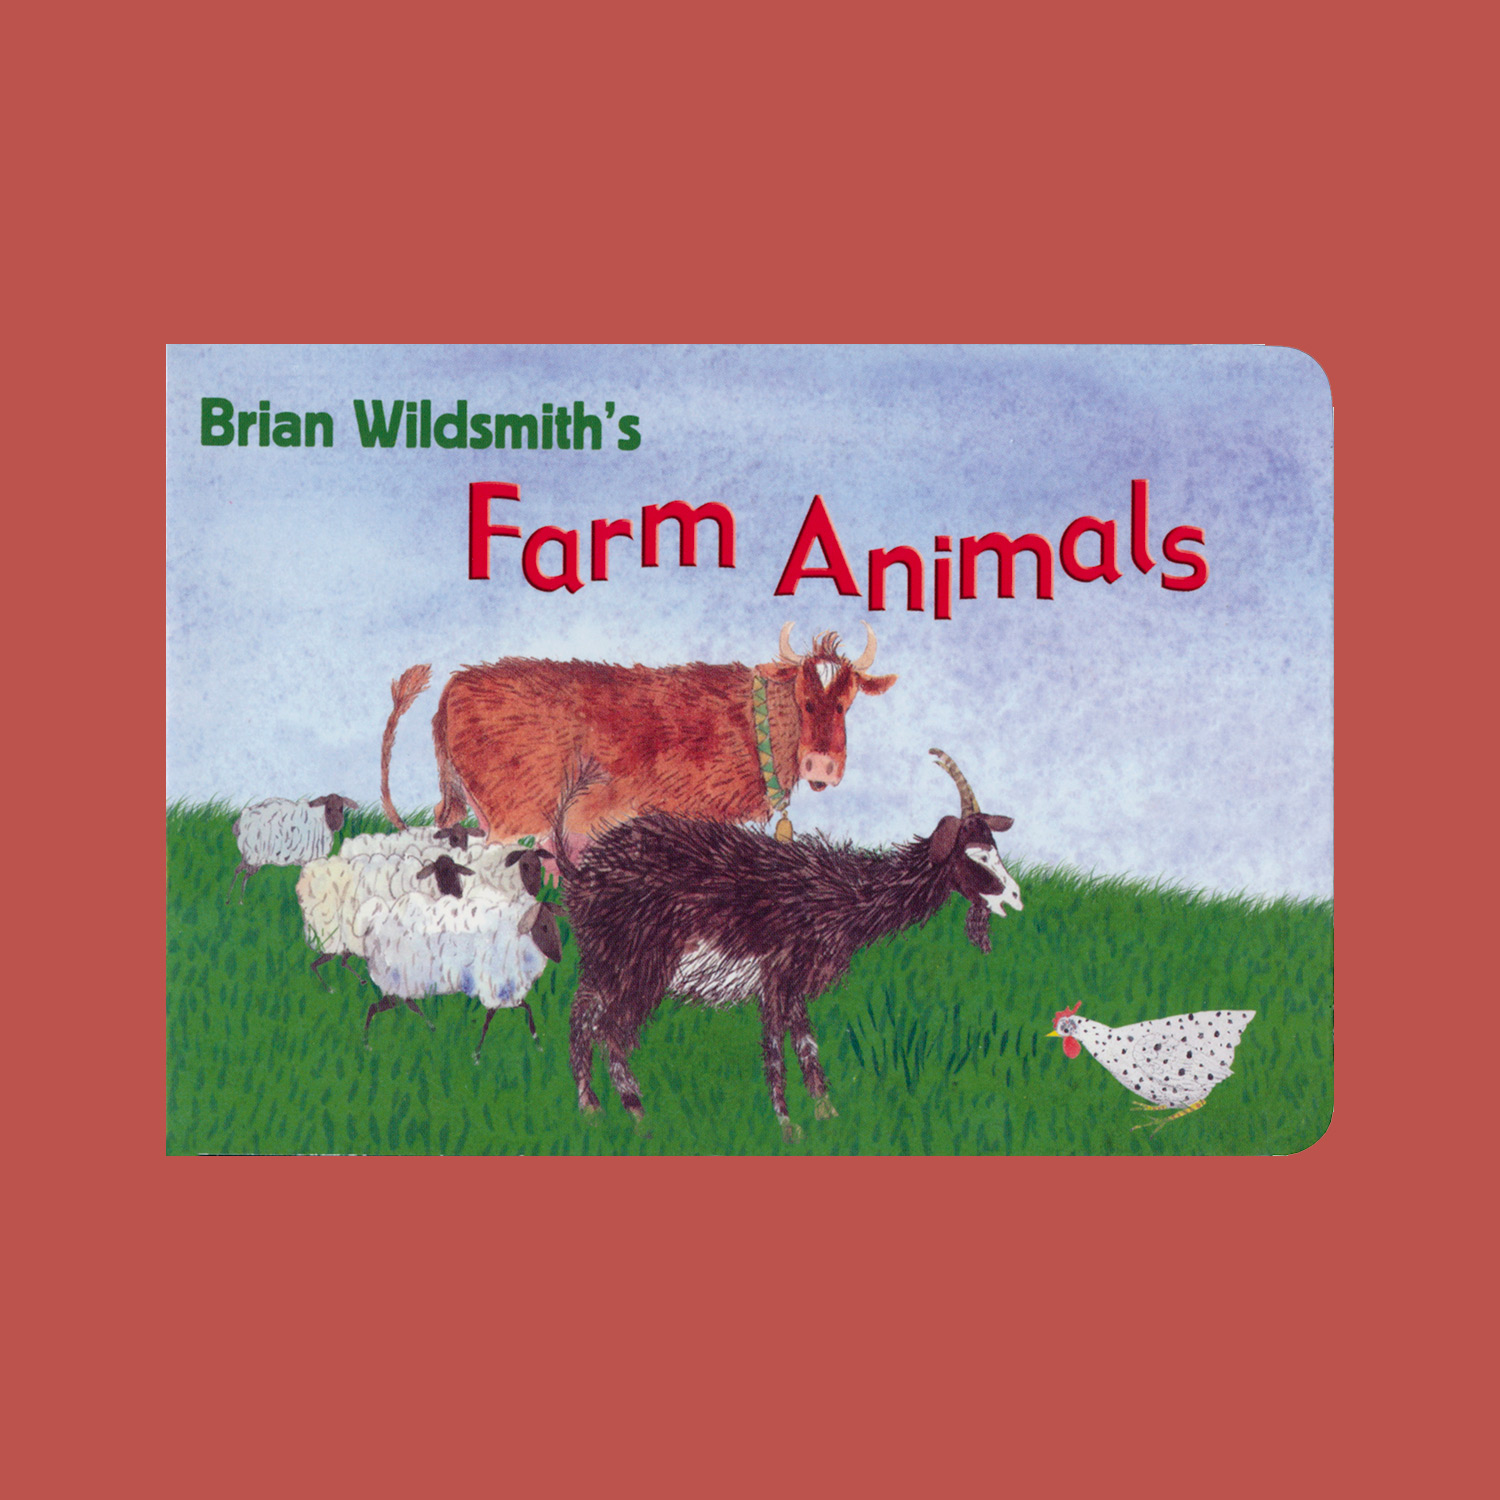 """BRIAN WILDSMITH'S FARM ANIMALS - 2007""""The illustrations for these chubby board books are compiled from several earlier Wildsmith books. Both are based on softly painted animal illustrations. One focuses on colors while the other highlights animal sounds. These would be the perfect choice for parents and caregivers to read with toddlers for entertainment as well as building basic knowledge skills."""""""